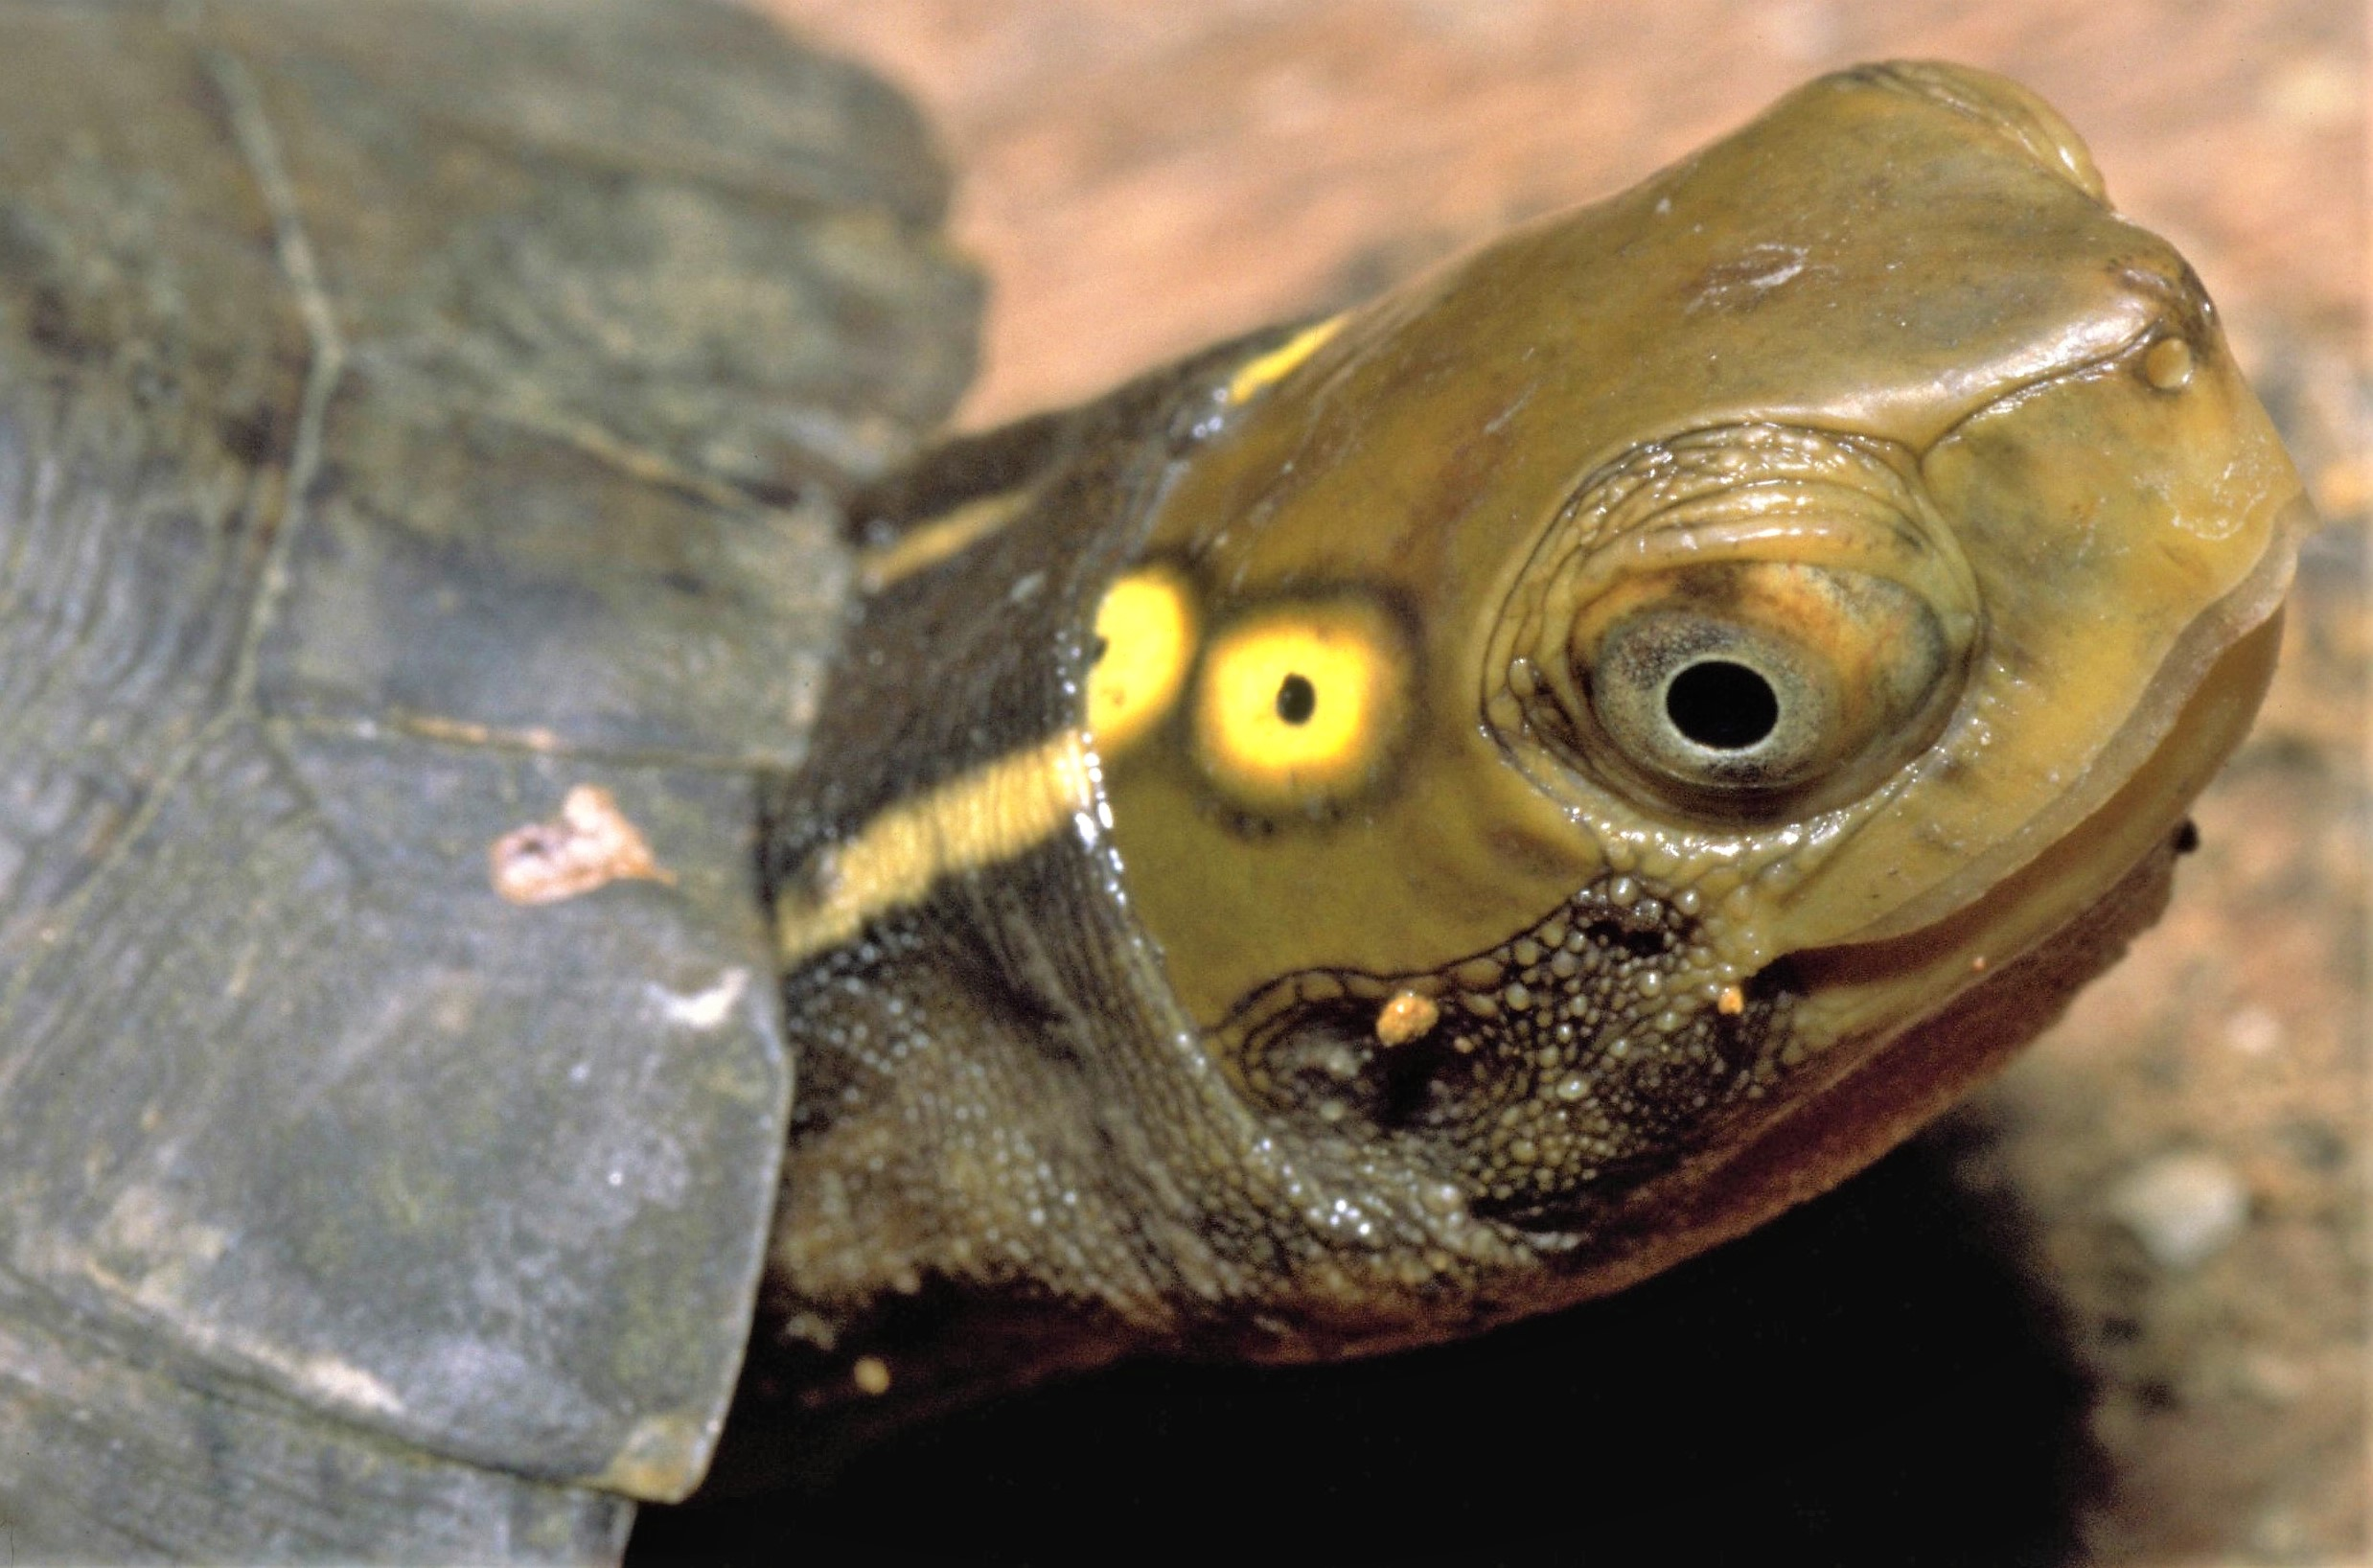 Four-eyed turtle specimen Credit: Thomas Ziegler Lilcense: CC-BY 4.0